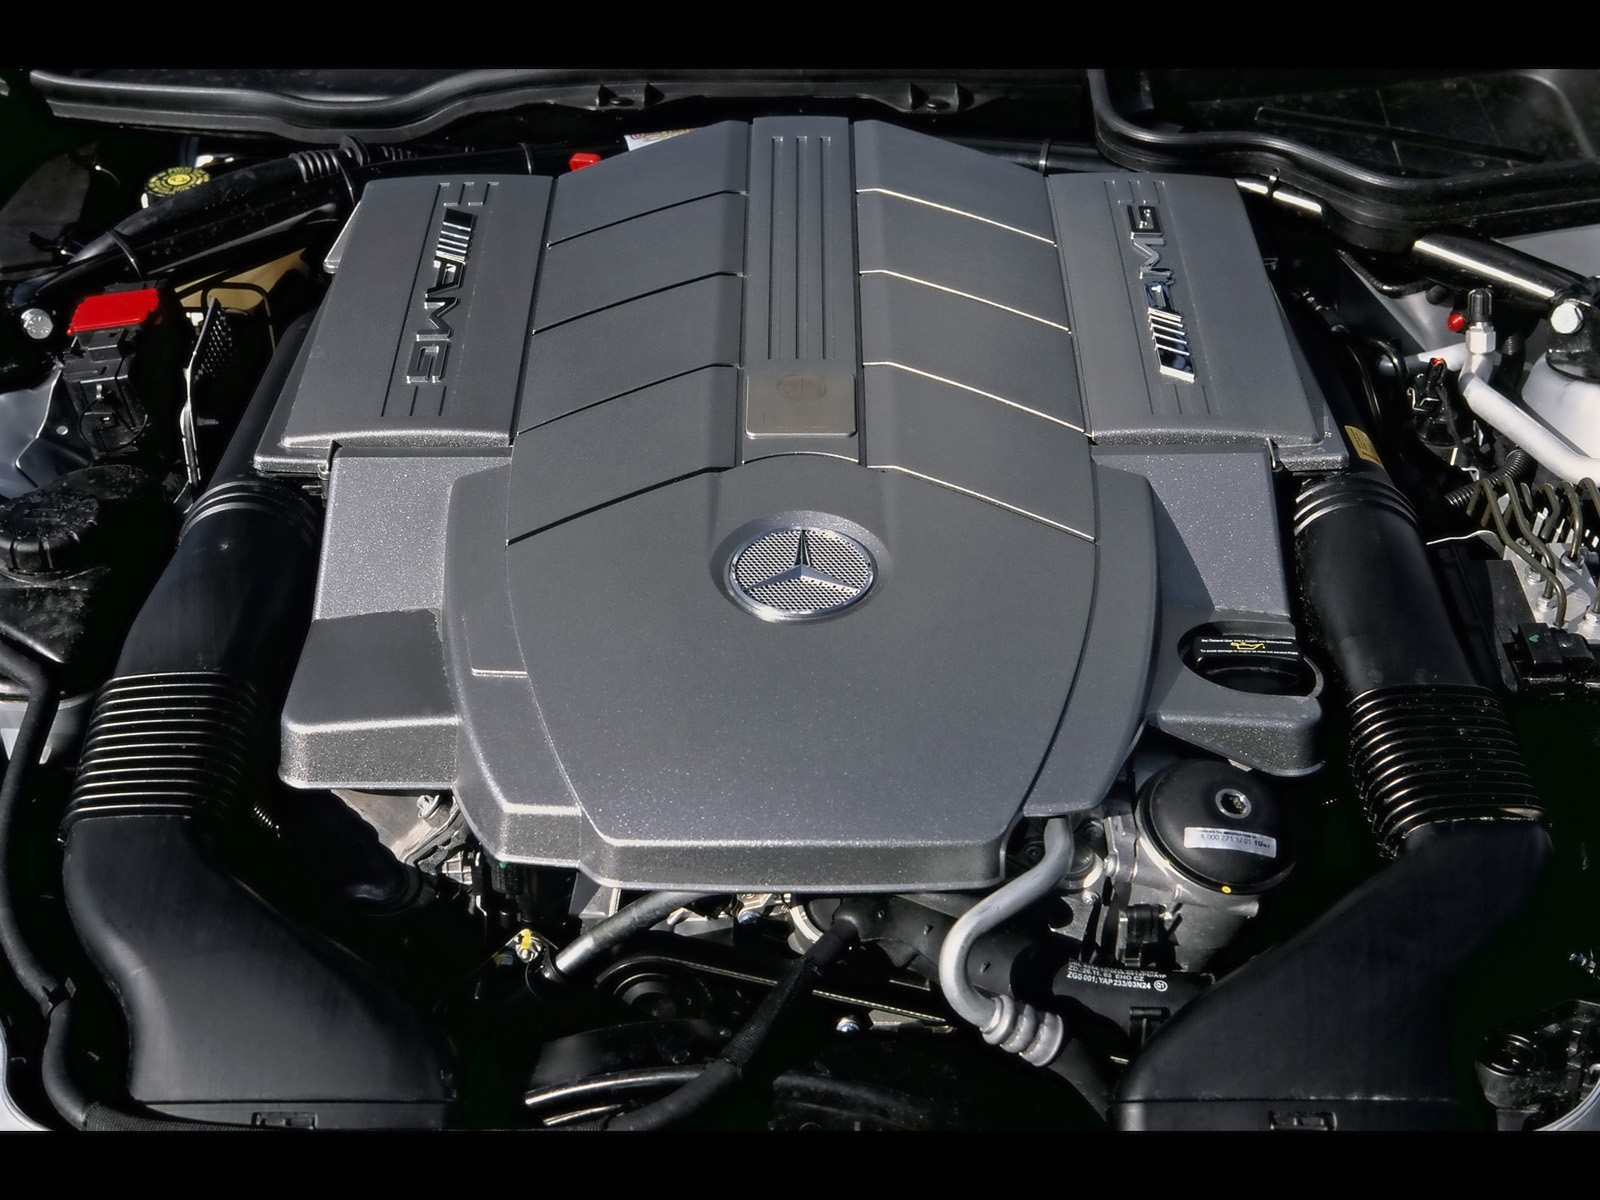 MERCEDES-BENZ R engine